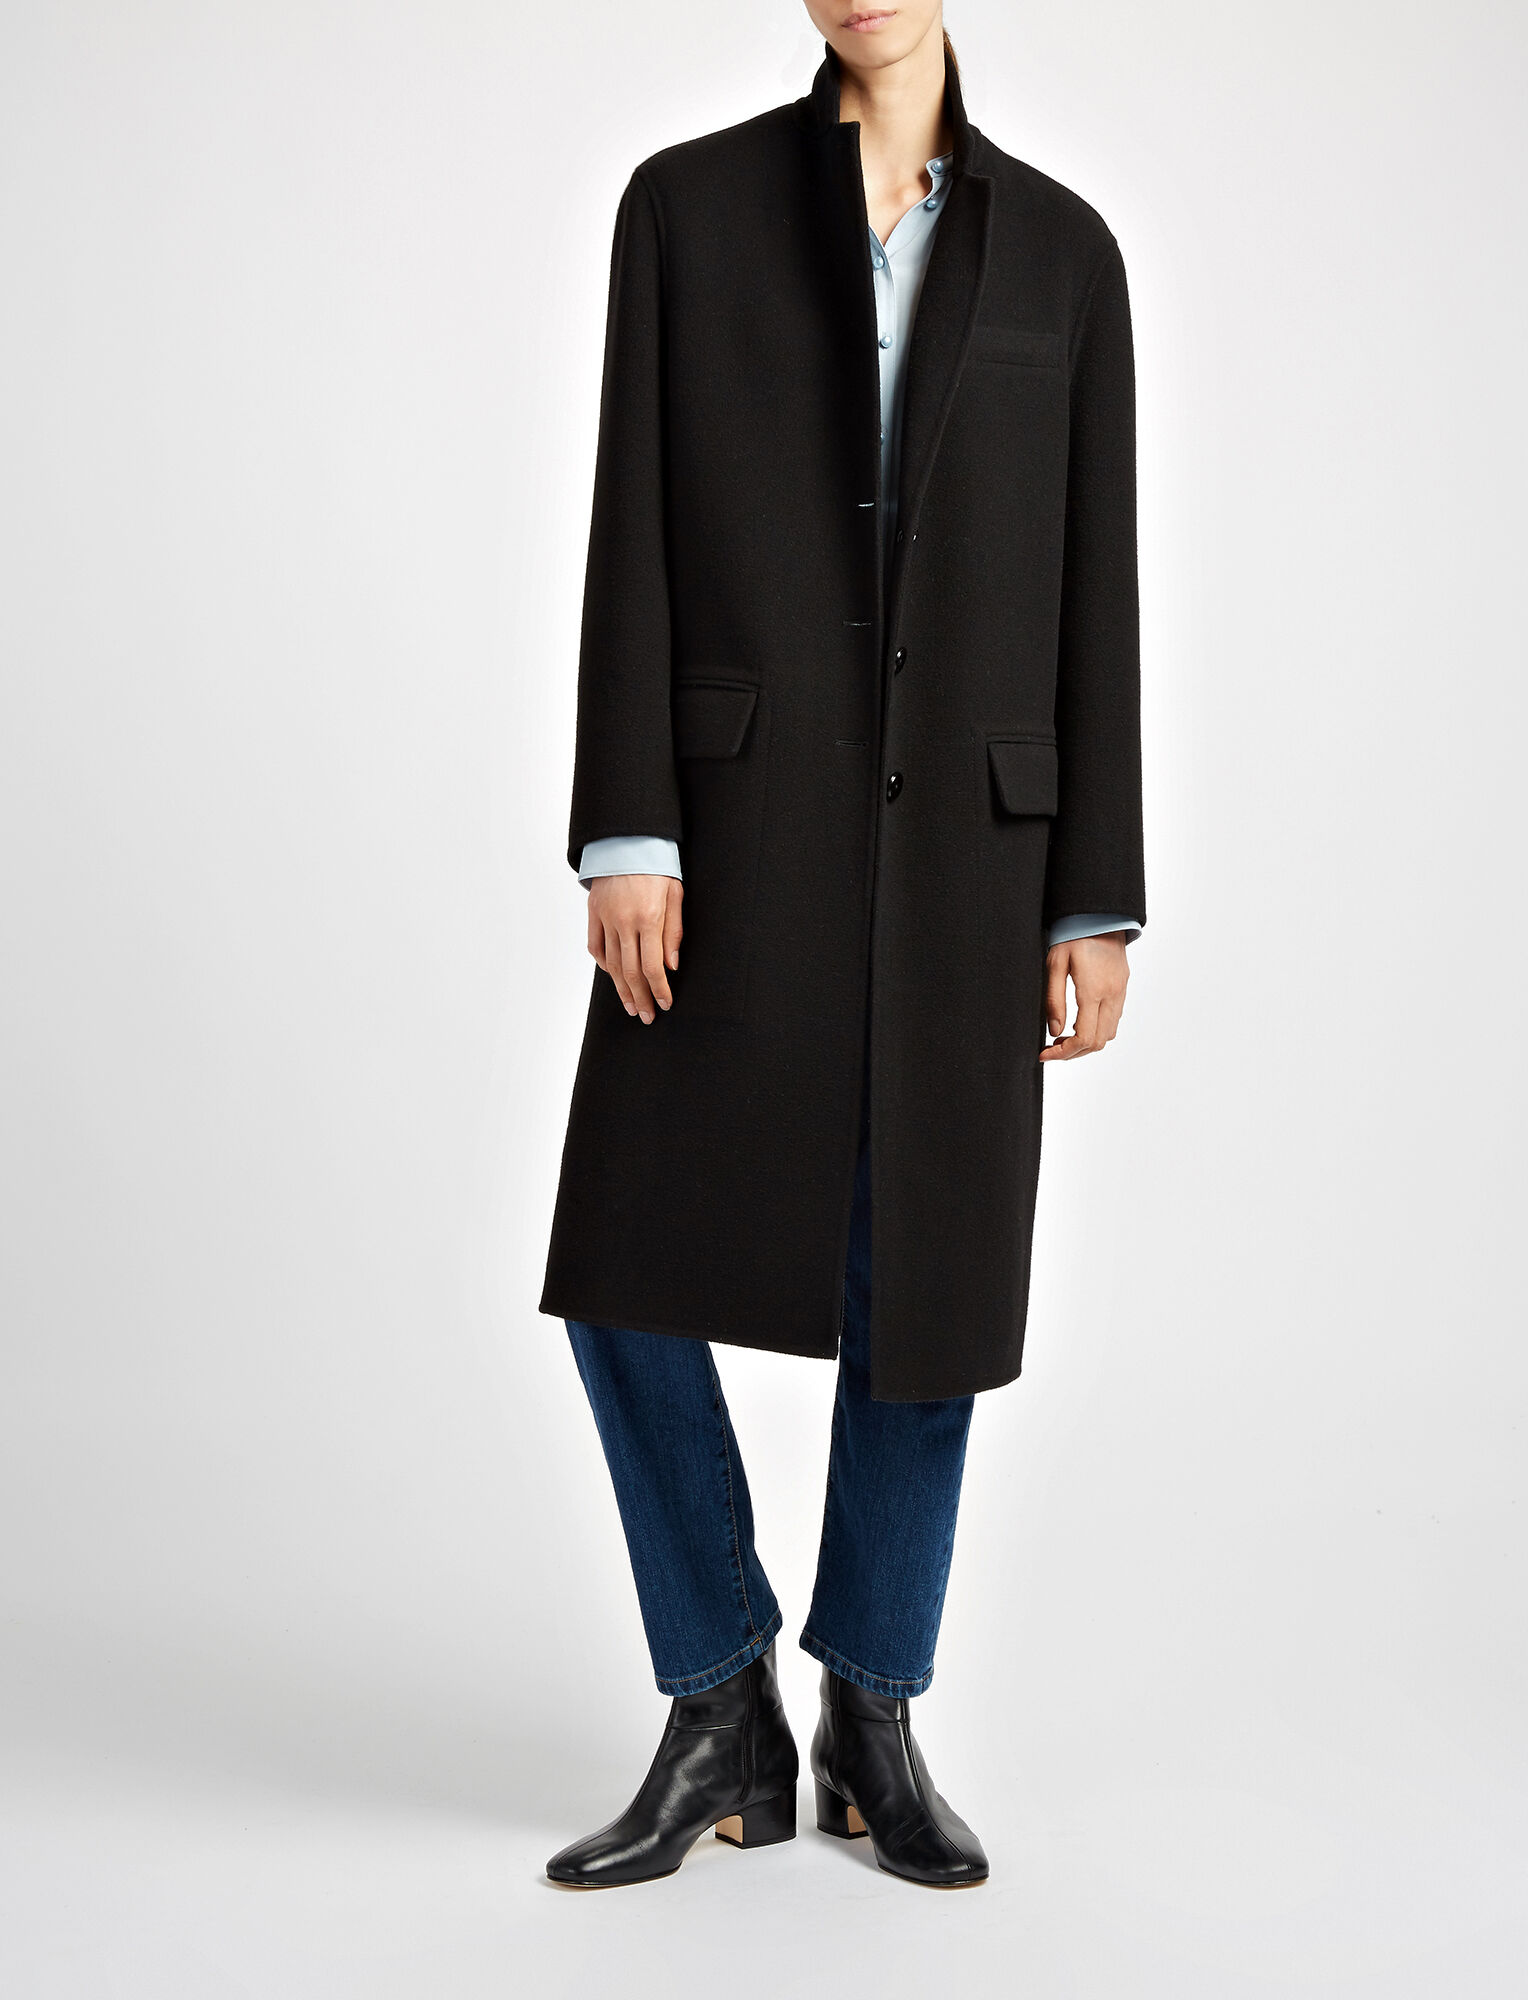 Joseph, Double Face Wool Simo Coat, in BLACK